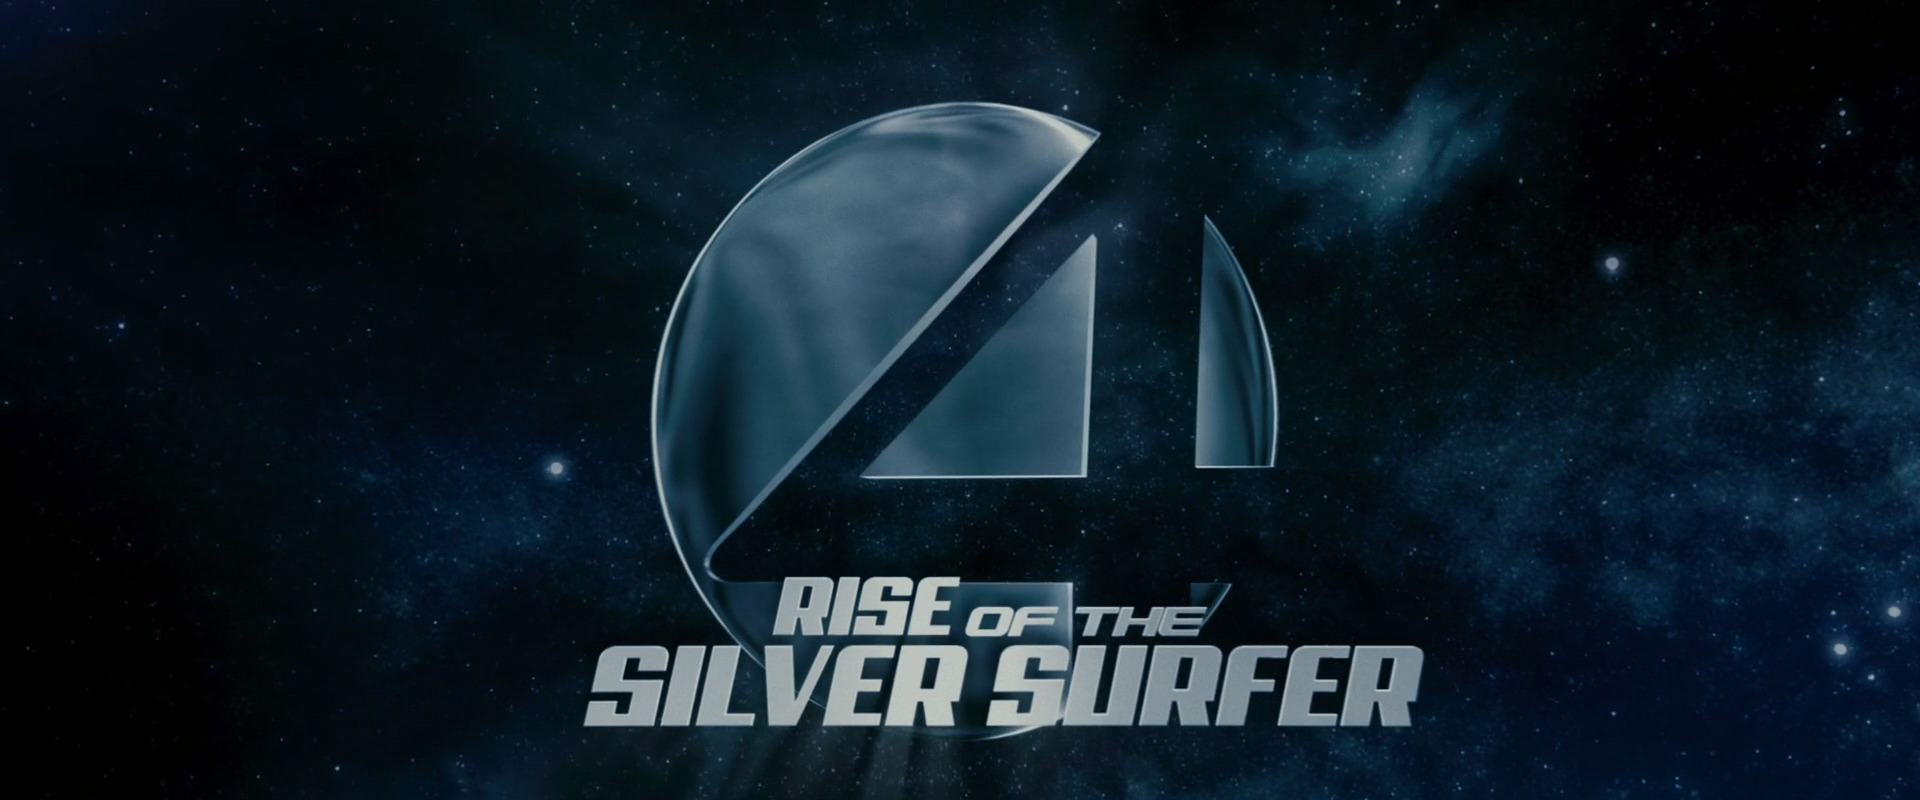 fantastic 4 rise of silver surfer full movie download in hindi